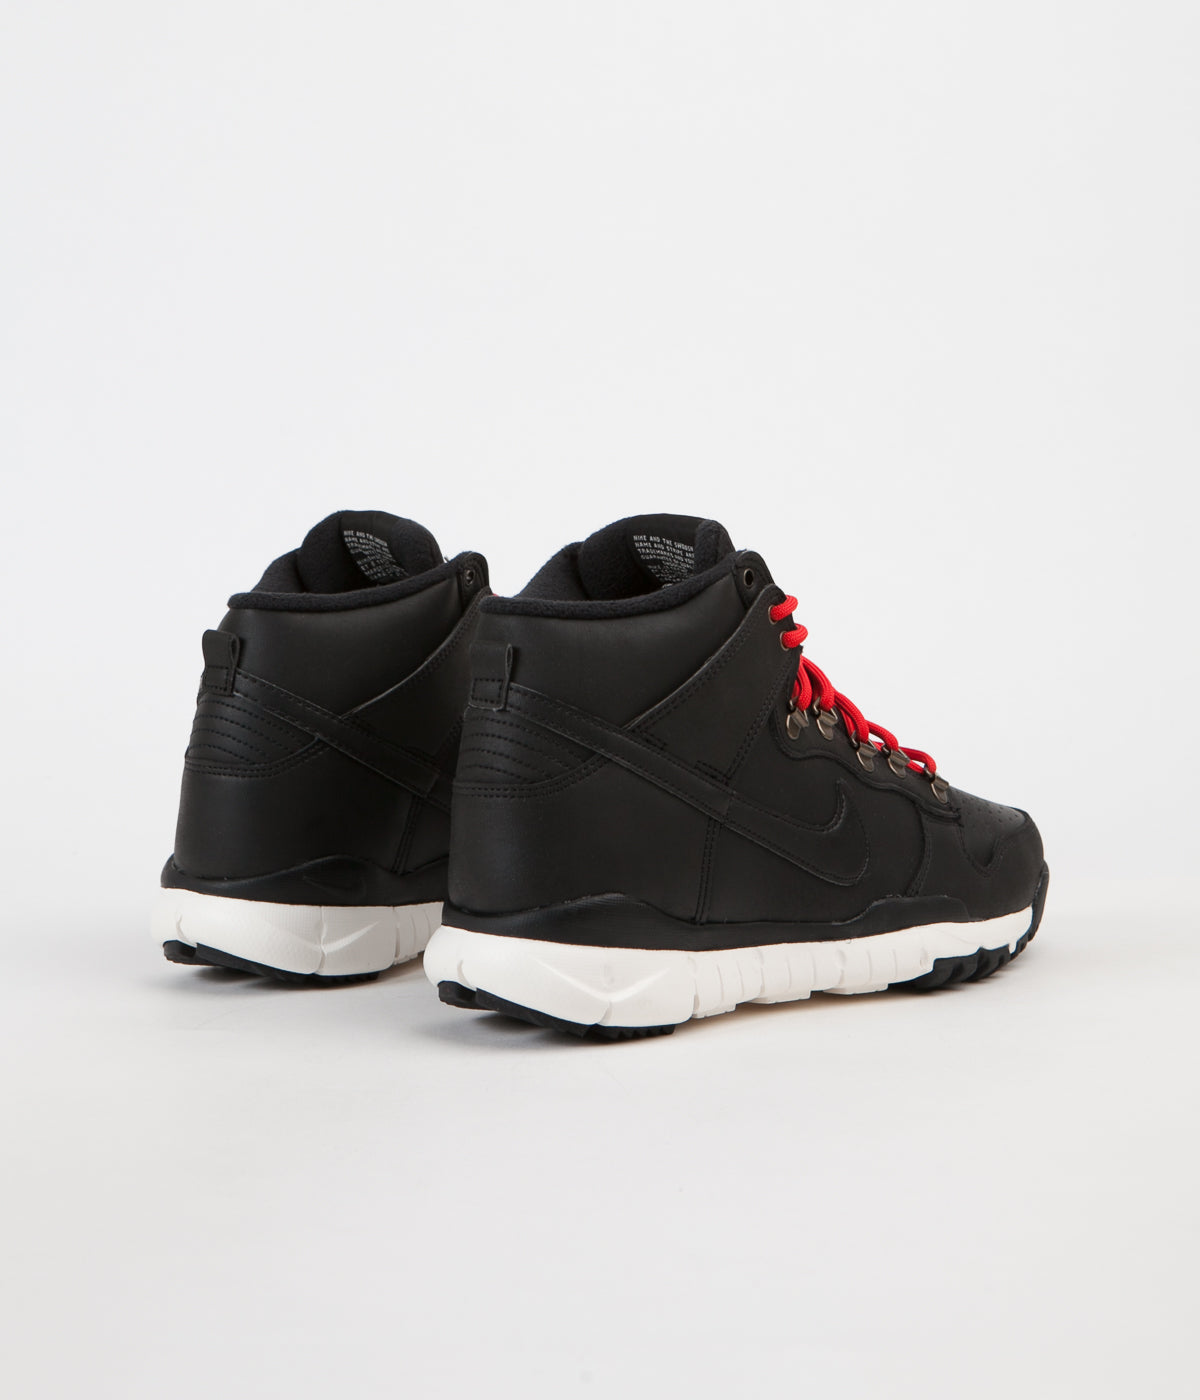 Nike SB Dunk High Boots - Black / Black - Sail - Ale Brown